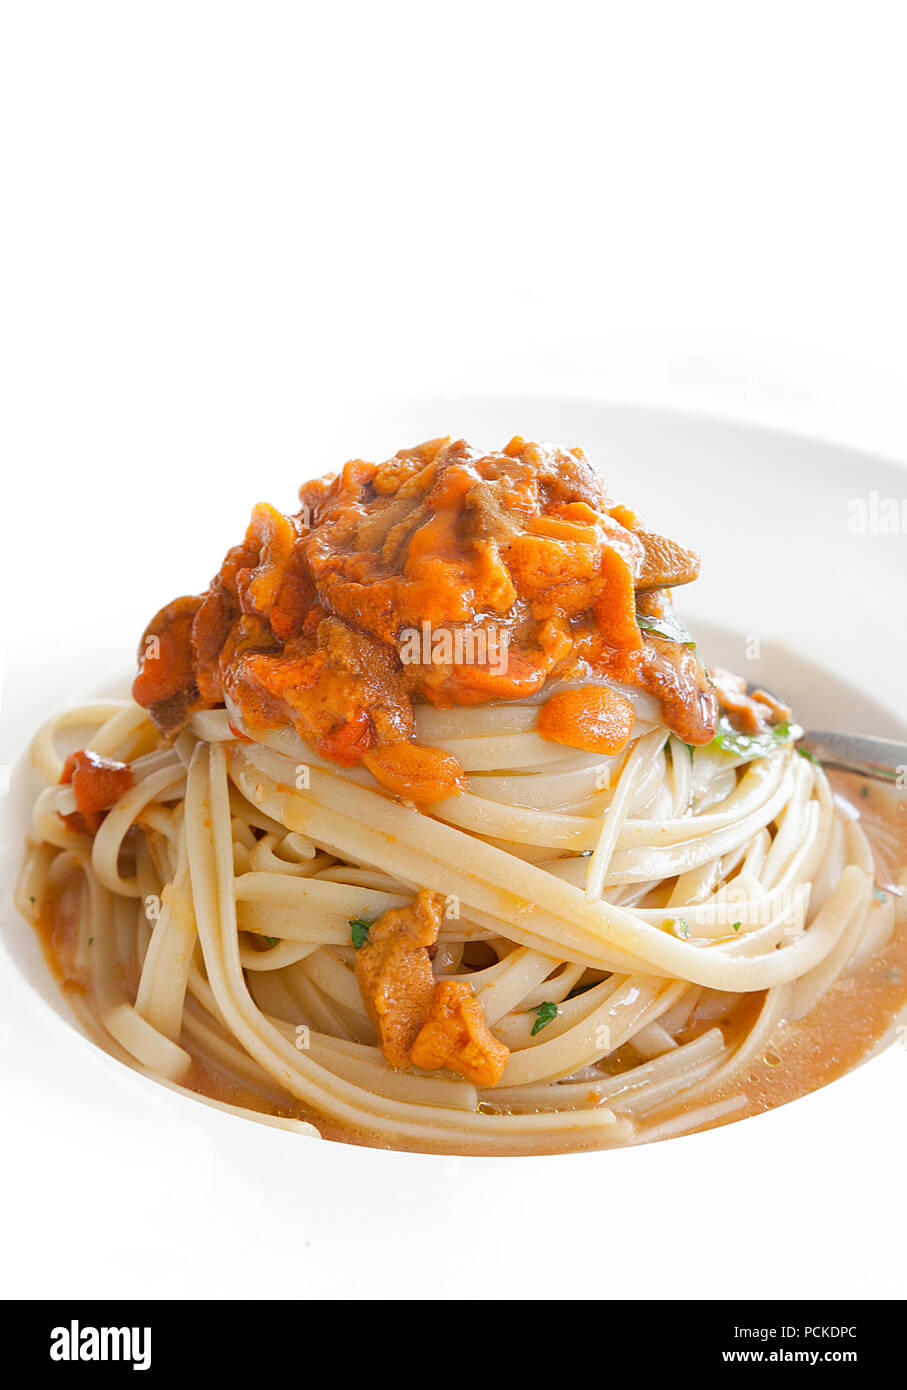 Sea Urchin Linguine. Mediterranean Food Delicacy. Close-up with a white background. Stock Image. - Stock Image